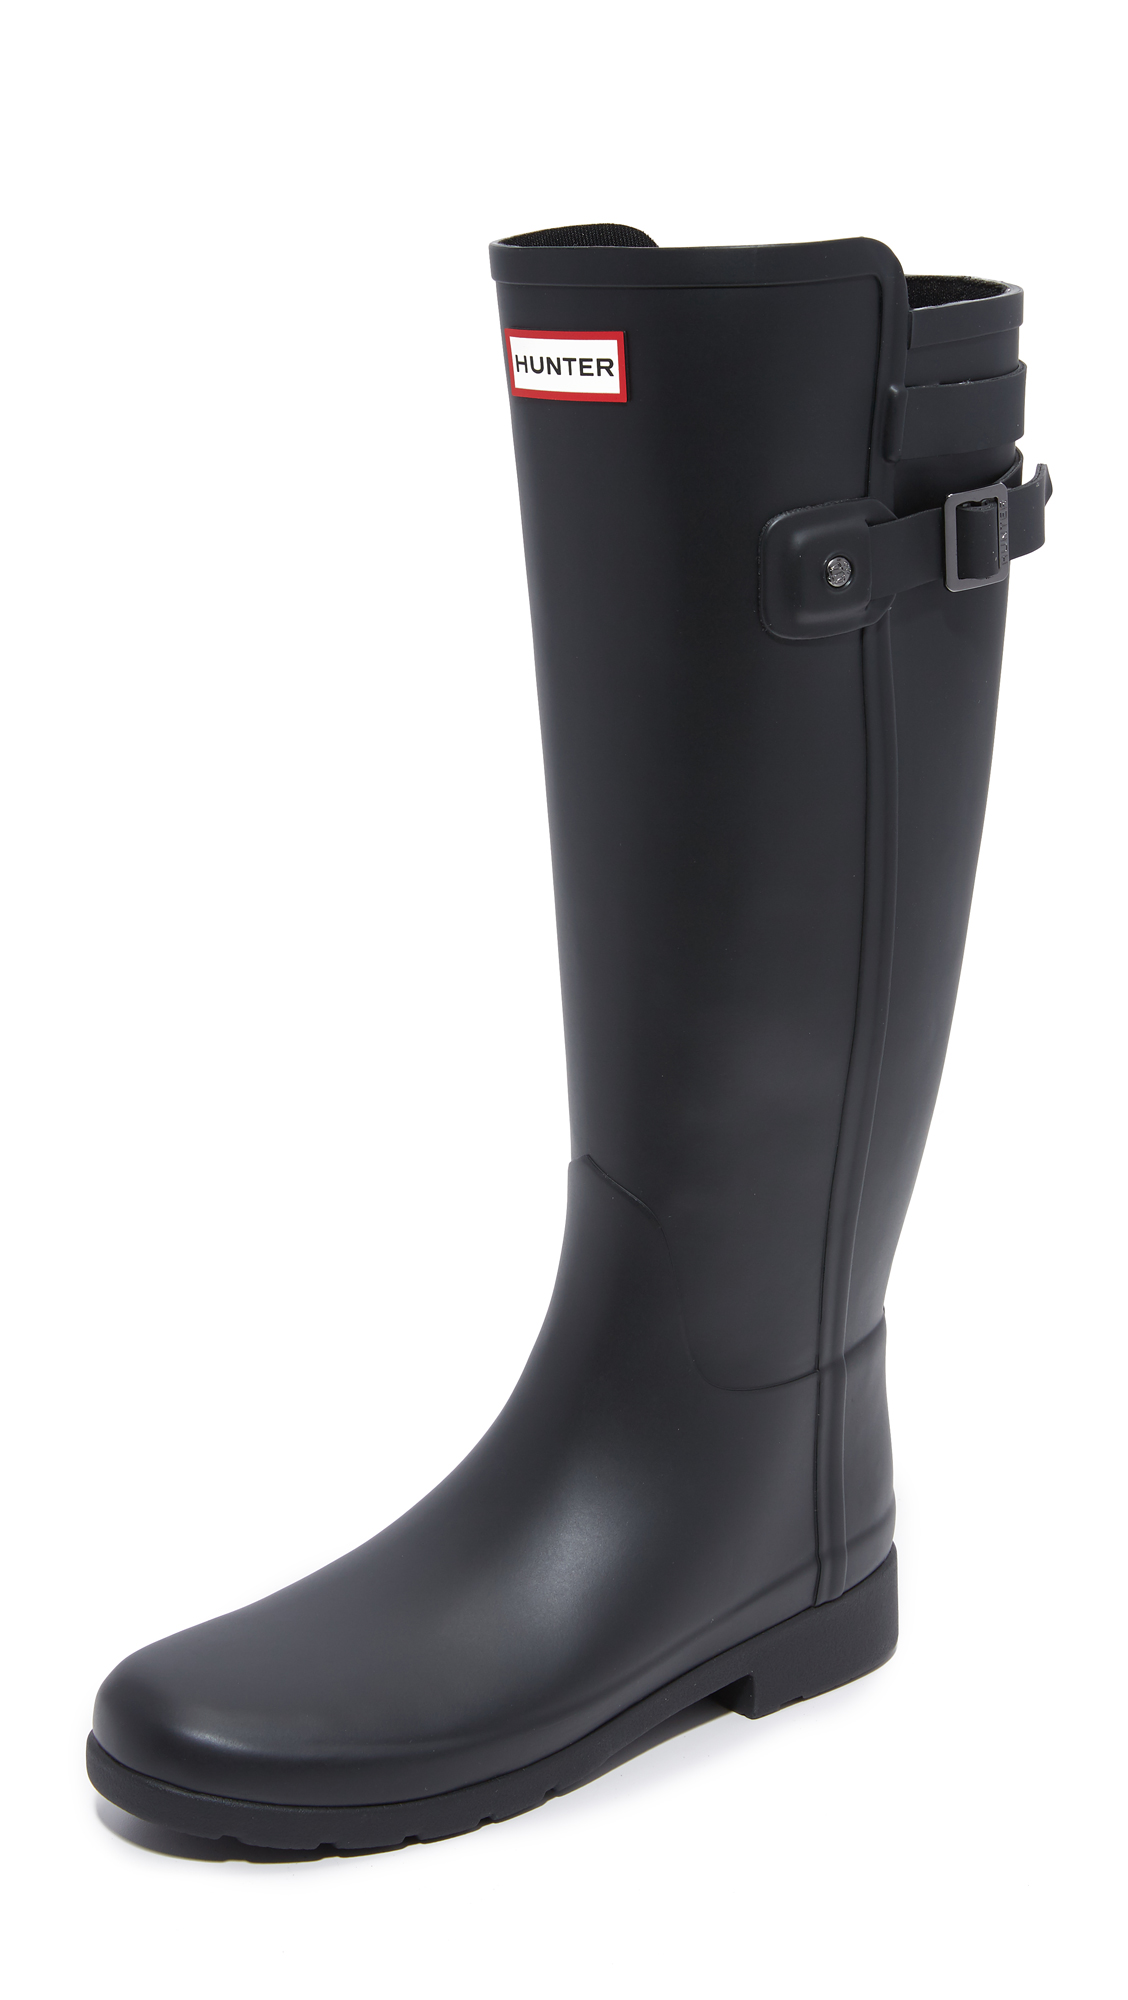 Hunter Boots Original Refined Back Strap Boots - Black at Shopbop